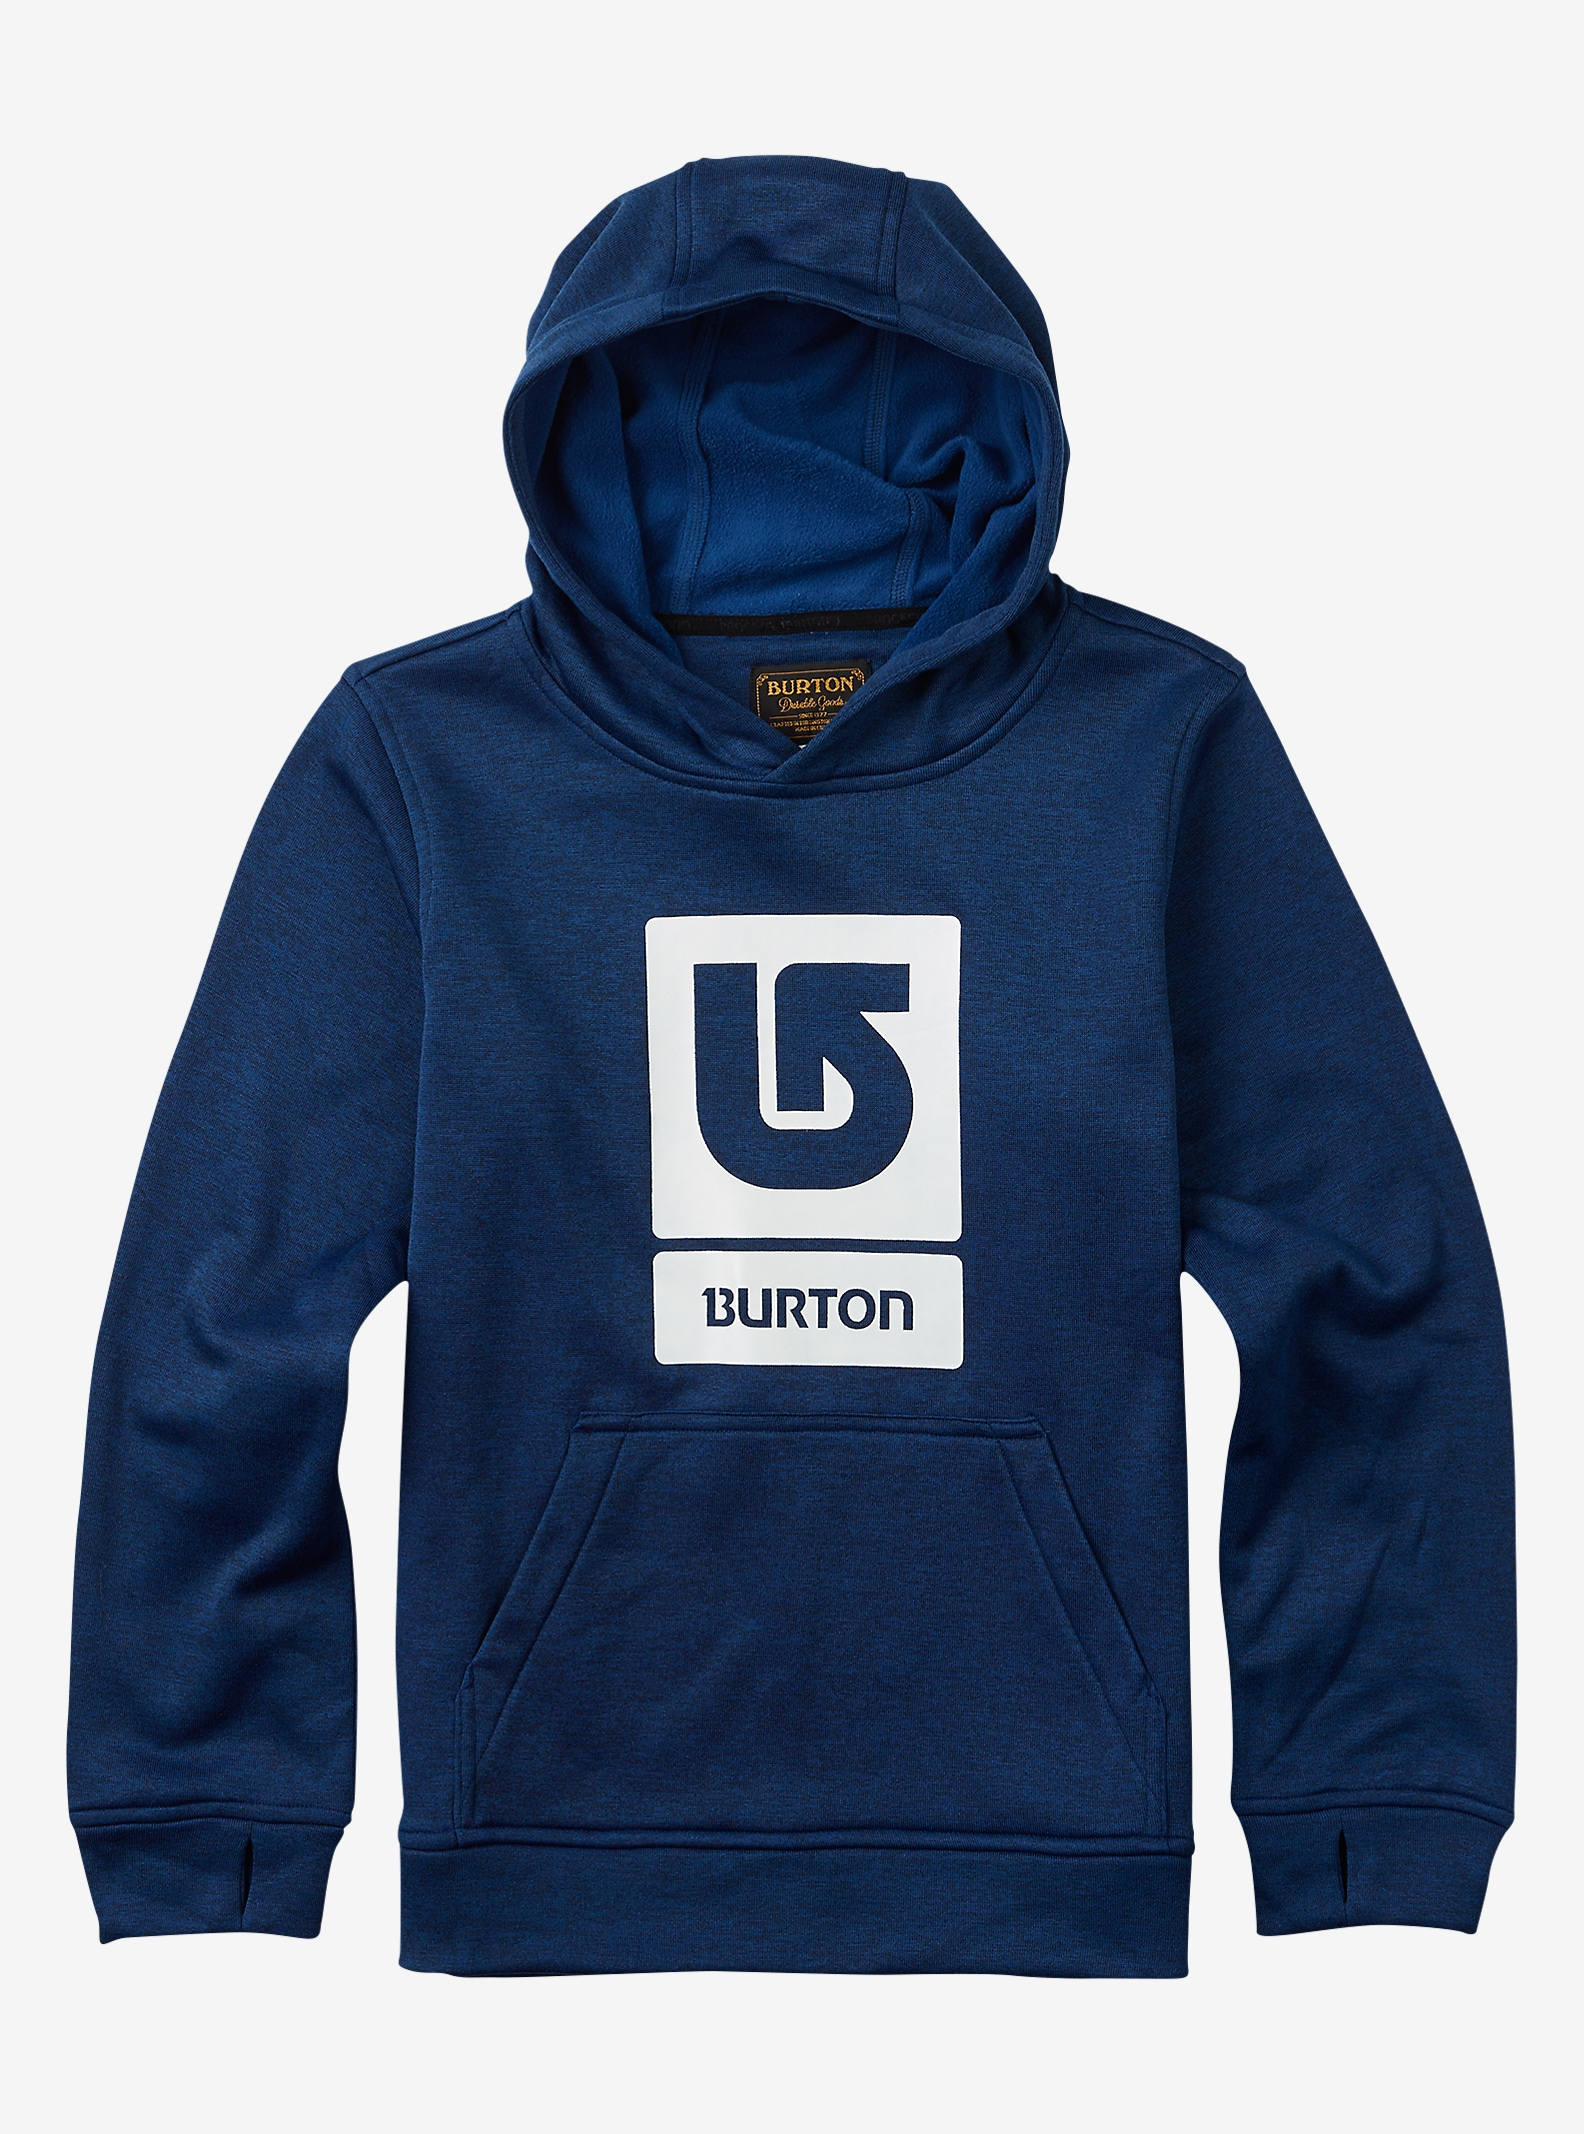 Burton Boys' Oak Pullover Hoodie shown in True Blue Heather